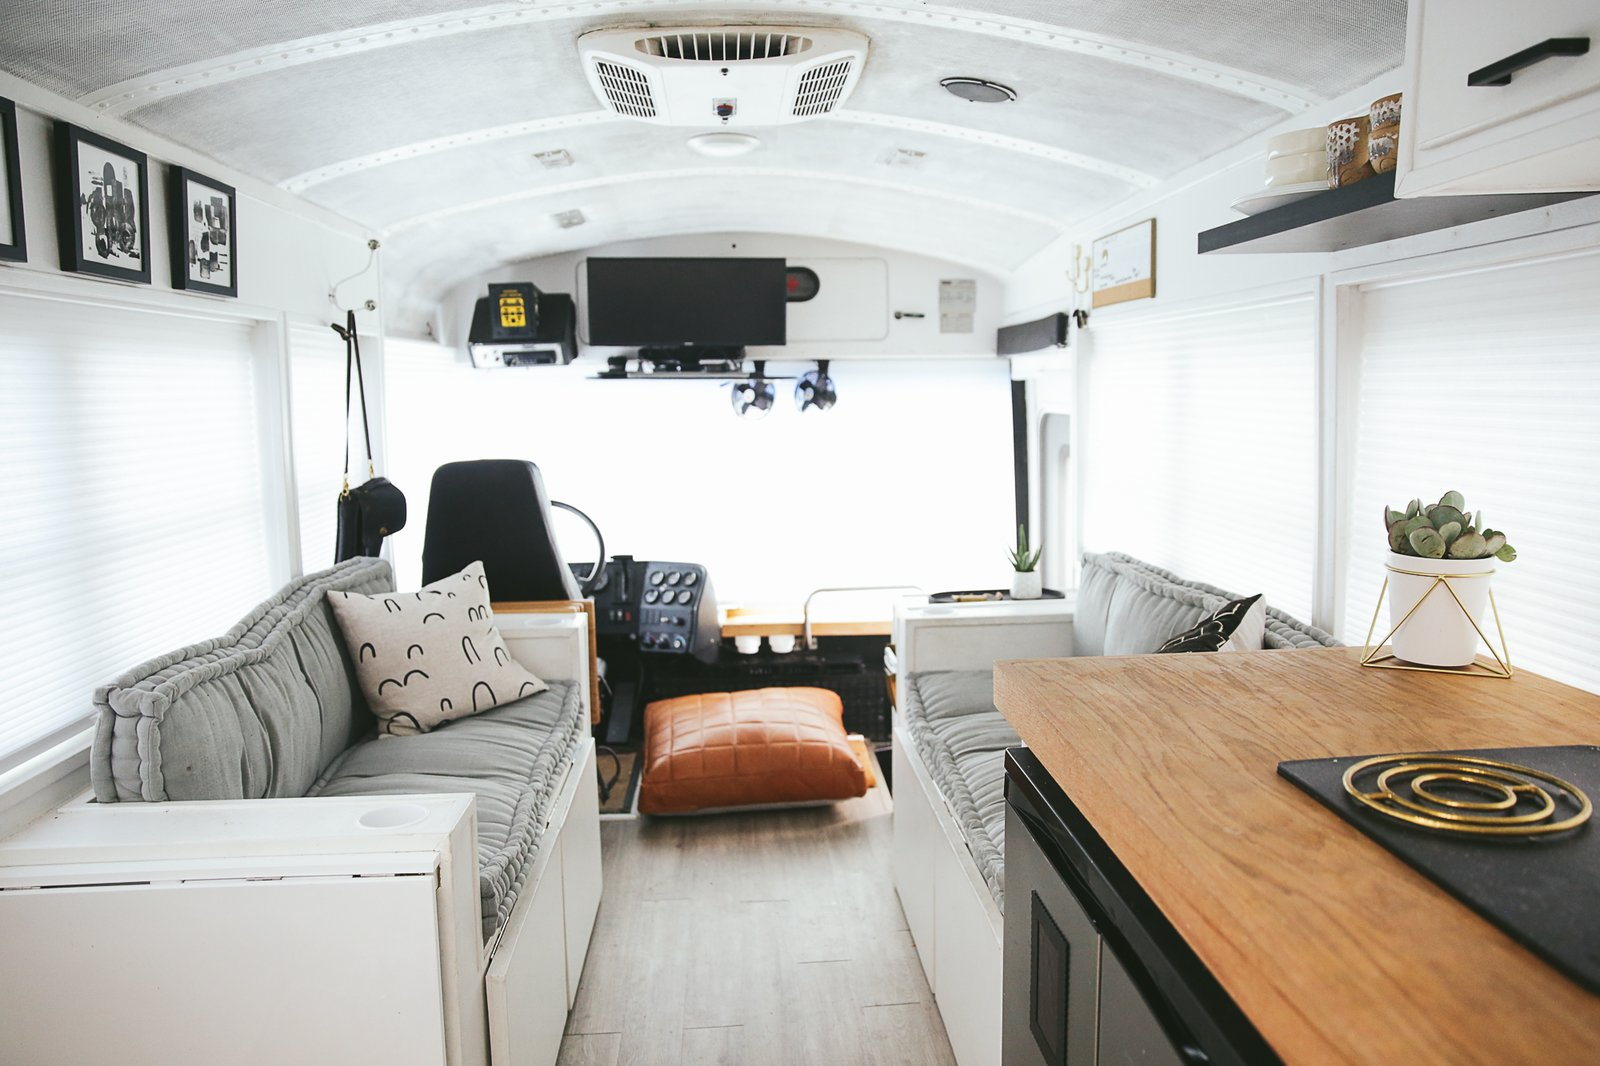 """Now, looking towards the front of the bus, two couches face each other. The couches can seat the whole family and also be converted into a full-sized bed, if needed. There is storage in the couch bases and a shoe shelf by the front door. The Mayes Team writes on their blog: """"This has been such a blessing and has helped us to keep the bus organized."""""""